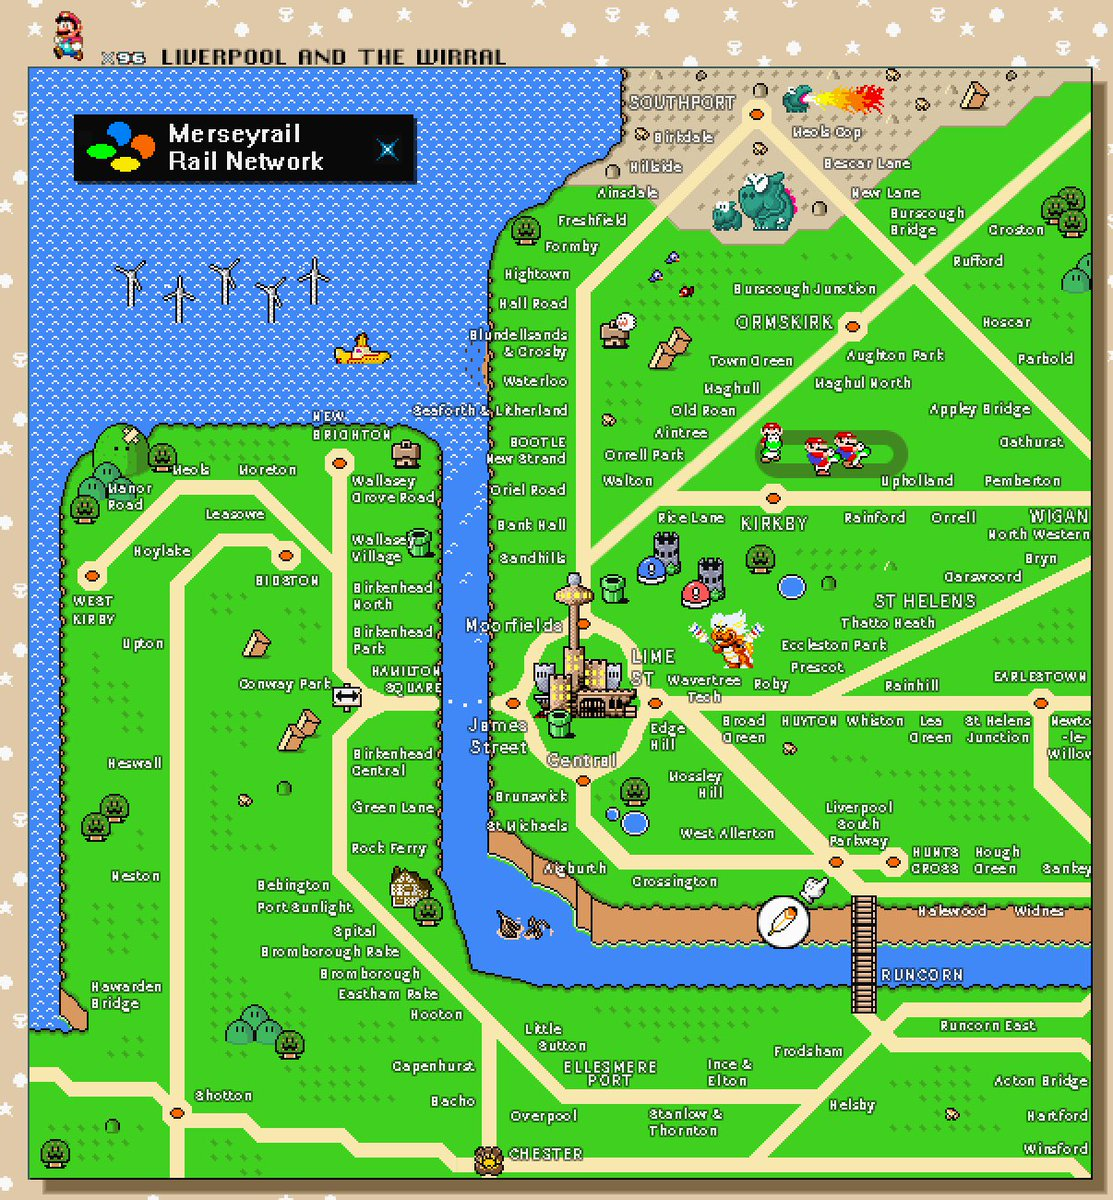 Tom German on Twitter Ive made a Super Mario World themed map of